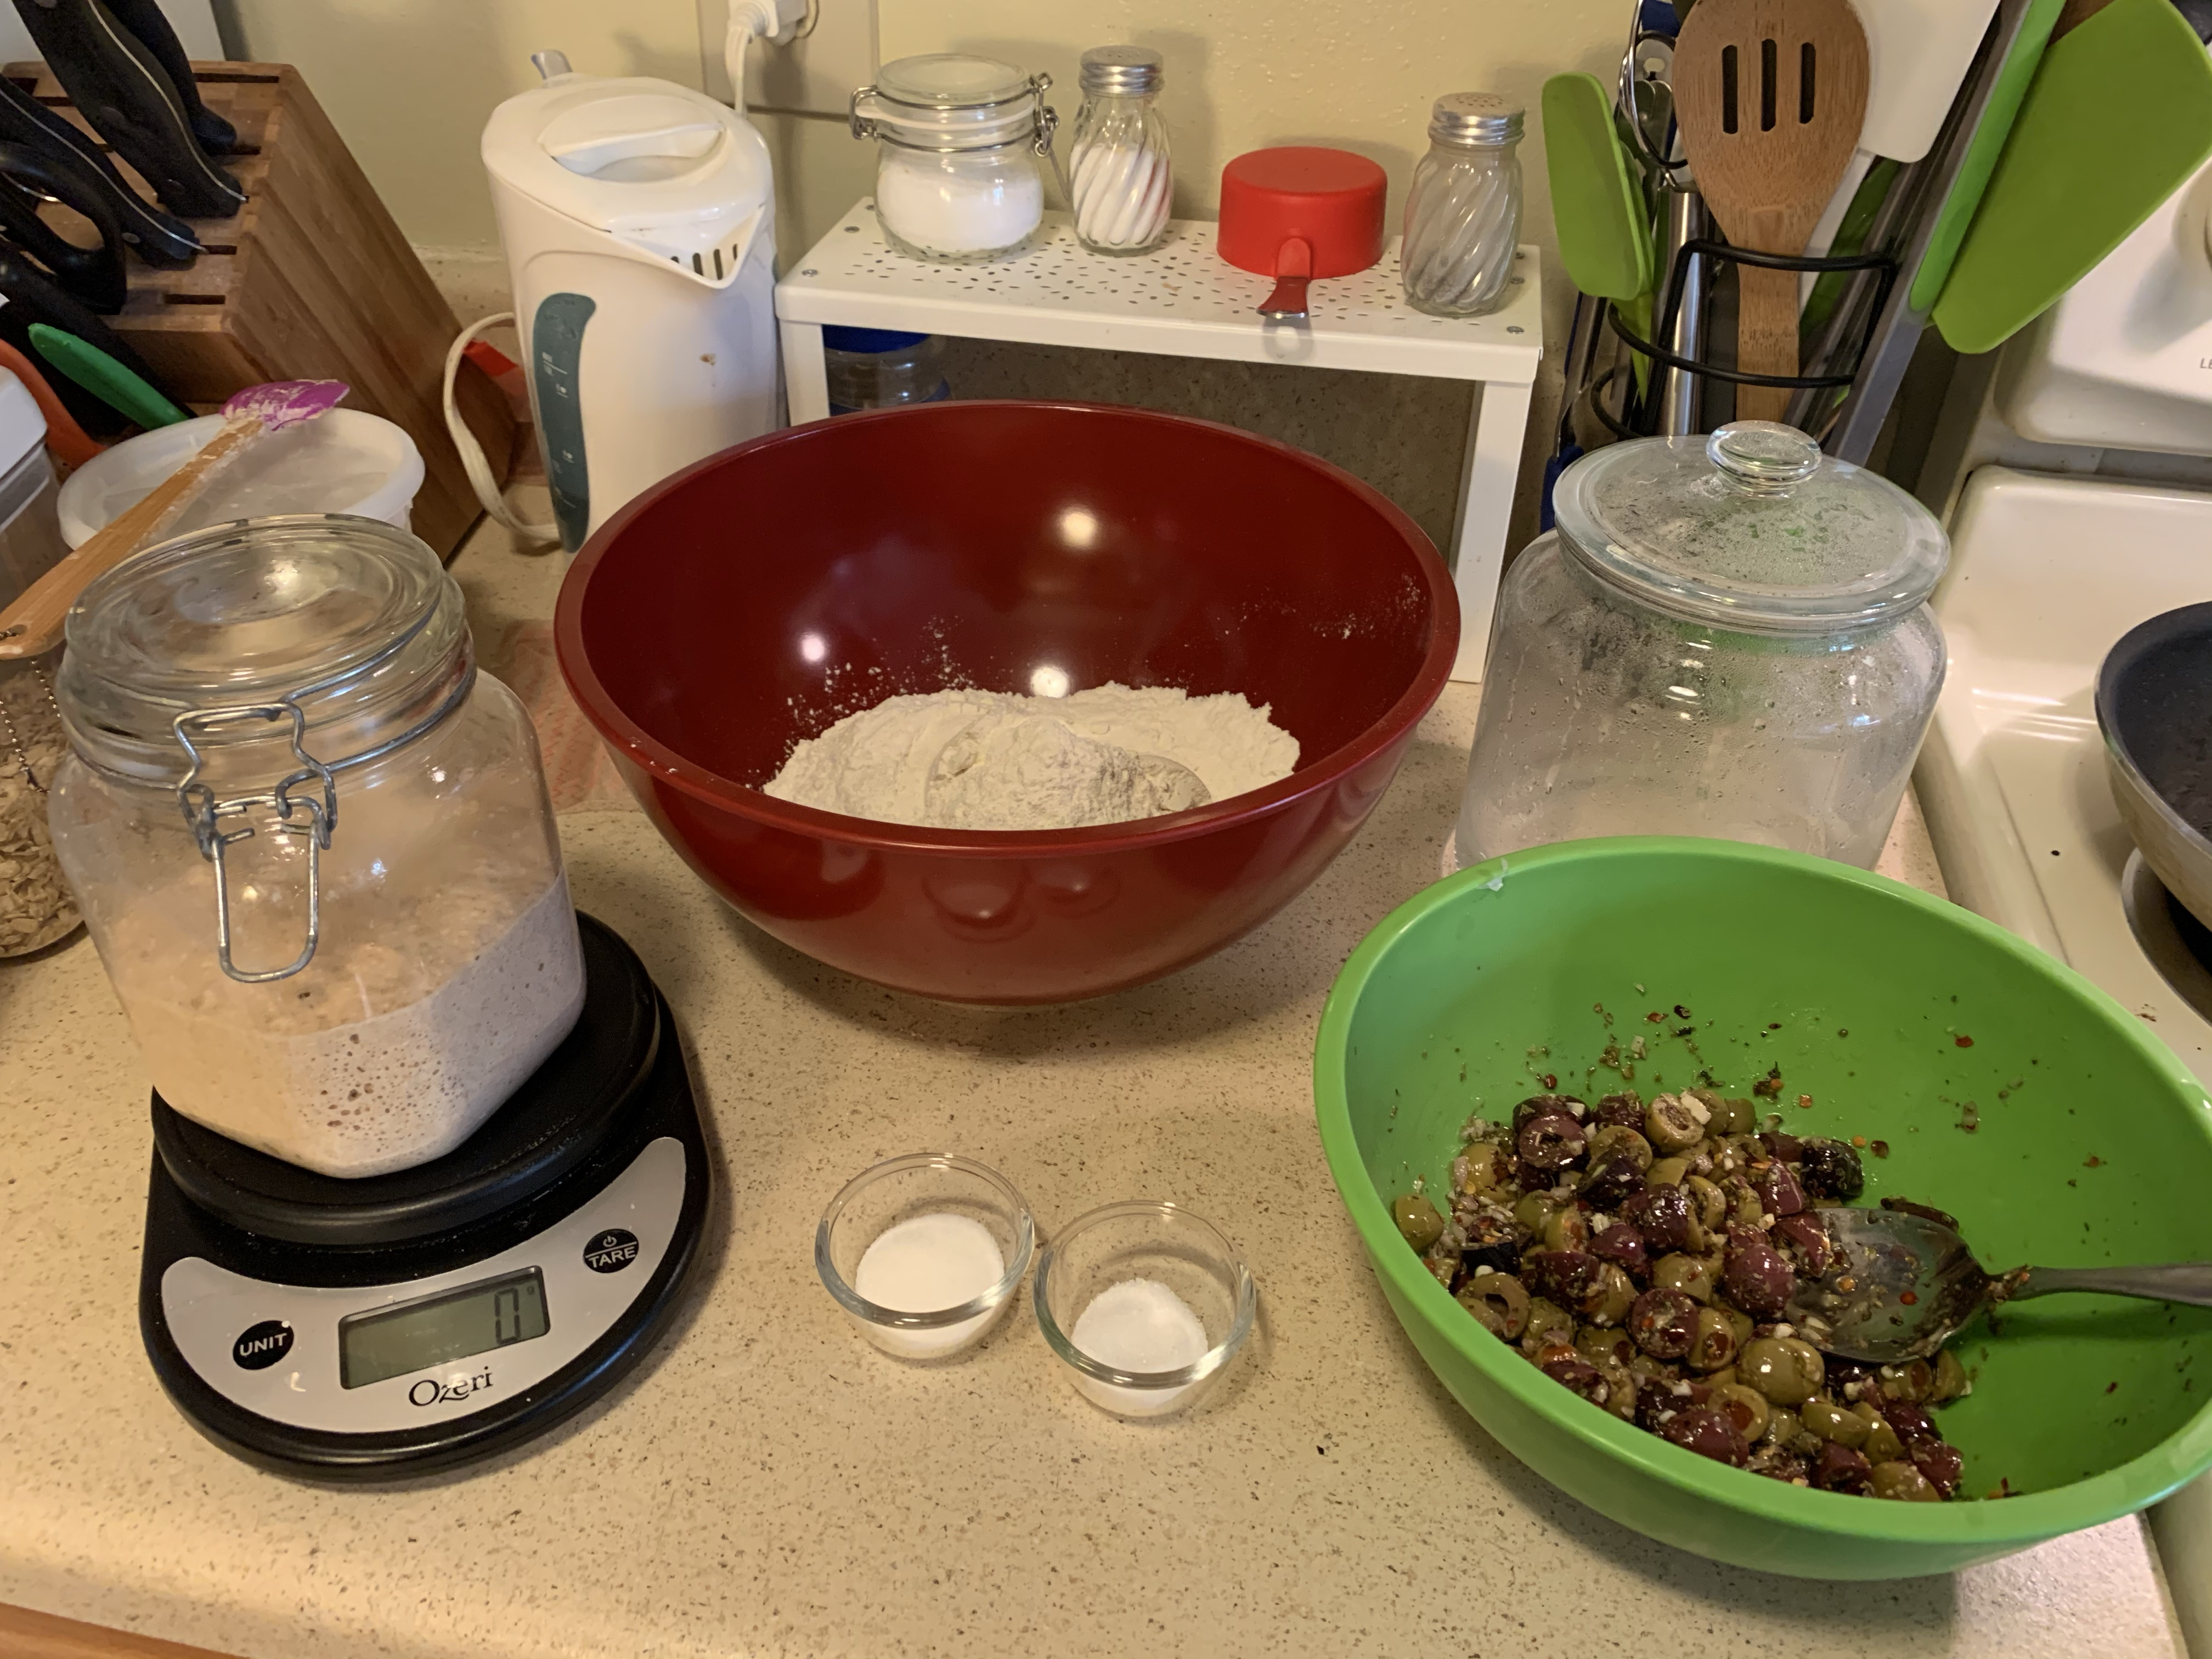 Counter with various bread ingredients, including a jar of sourdough starter on a kitchen scale, a bowl of flour, two small bowls with salt and sugar, a bowl of olive salad, and a glass jar with warm water.